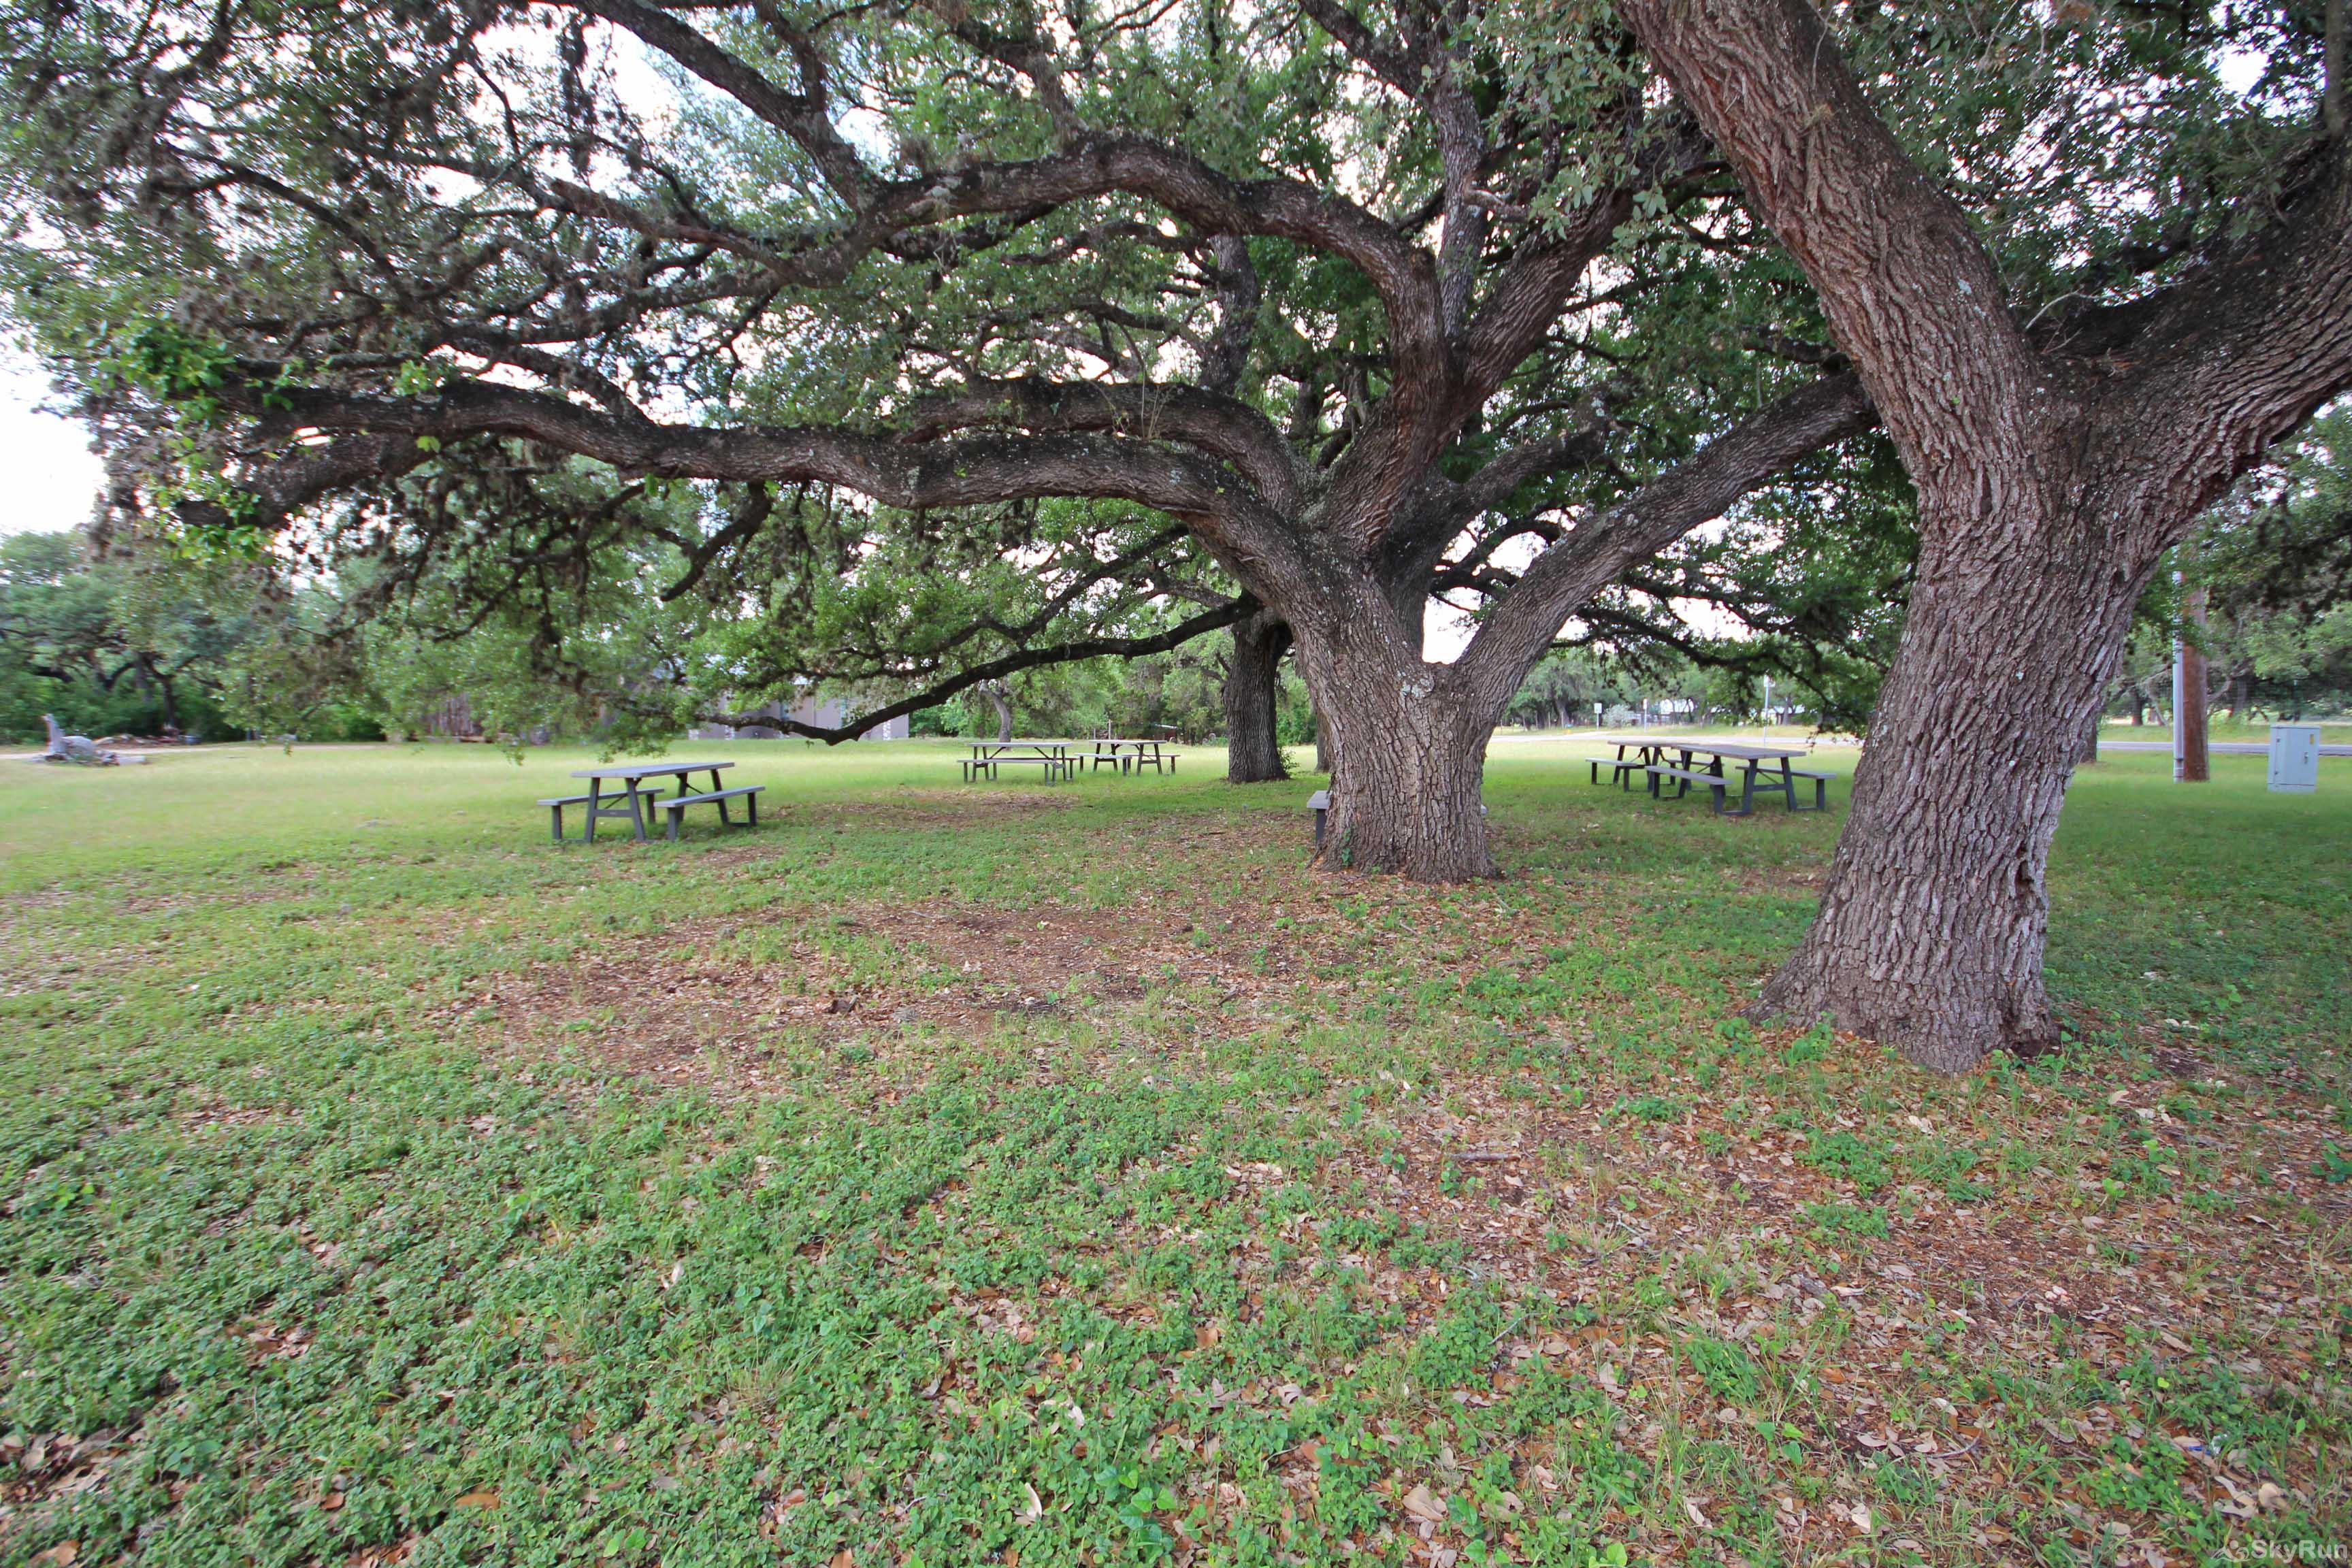 PYGMY GOAT HOUSE Picnic Area Under the Ancient Oaks